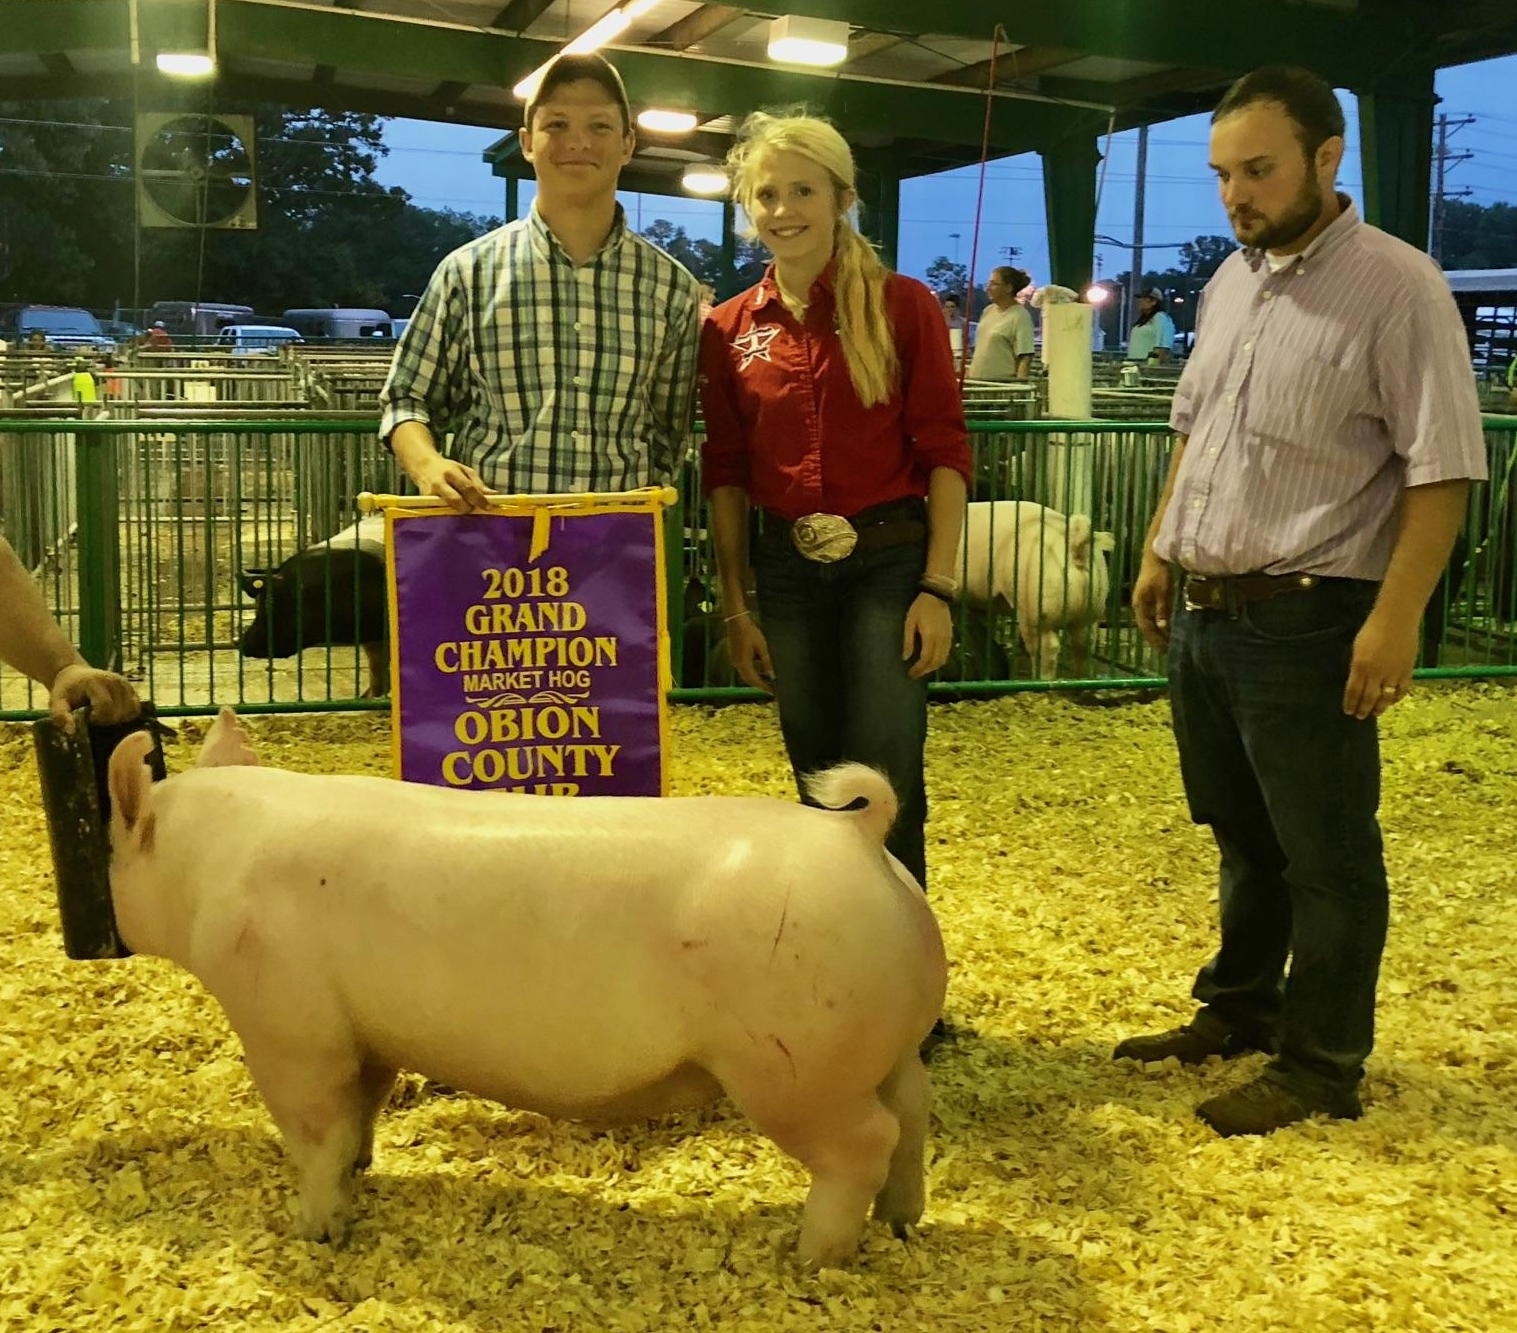 Hunter Curland and Hailey Azbill 2018 Obion County Fair Champion Market Hog